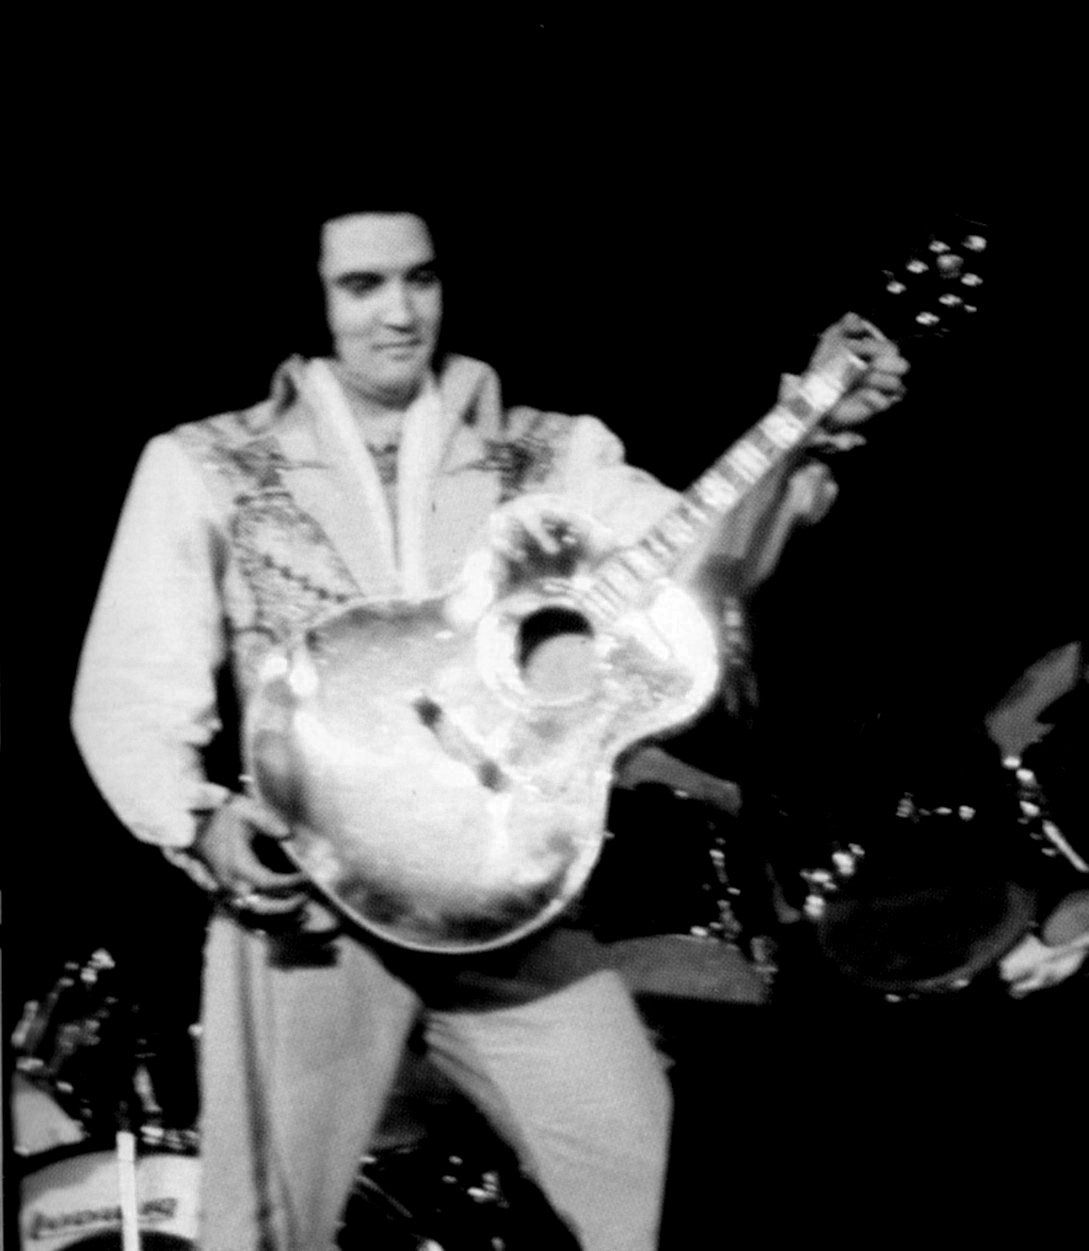 ELVIS ON STAGE IN 1976...